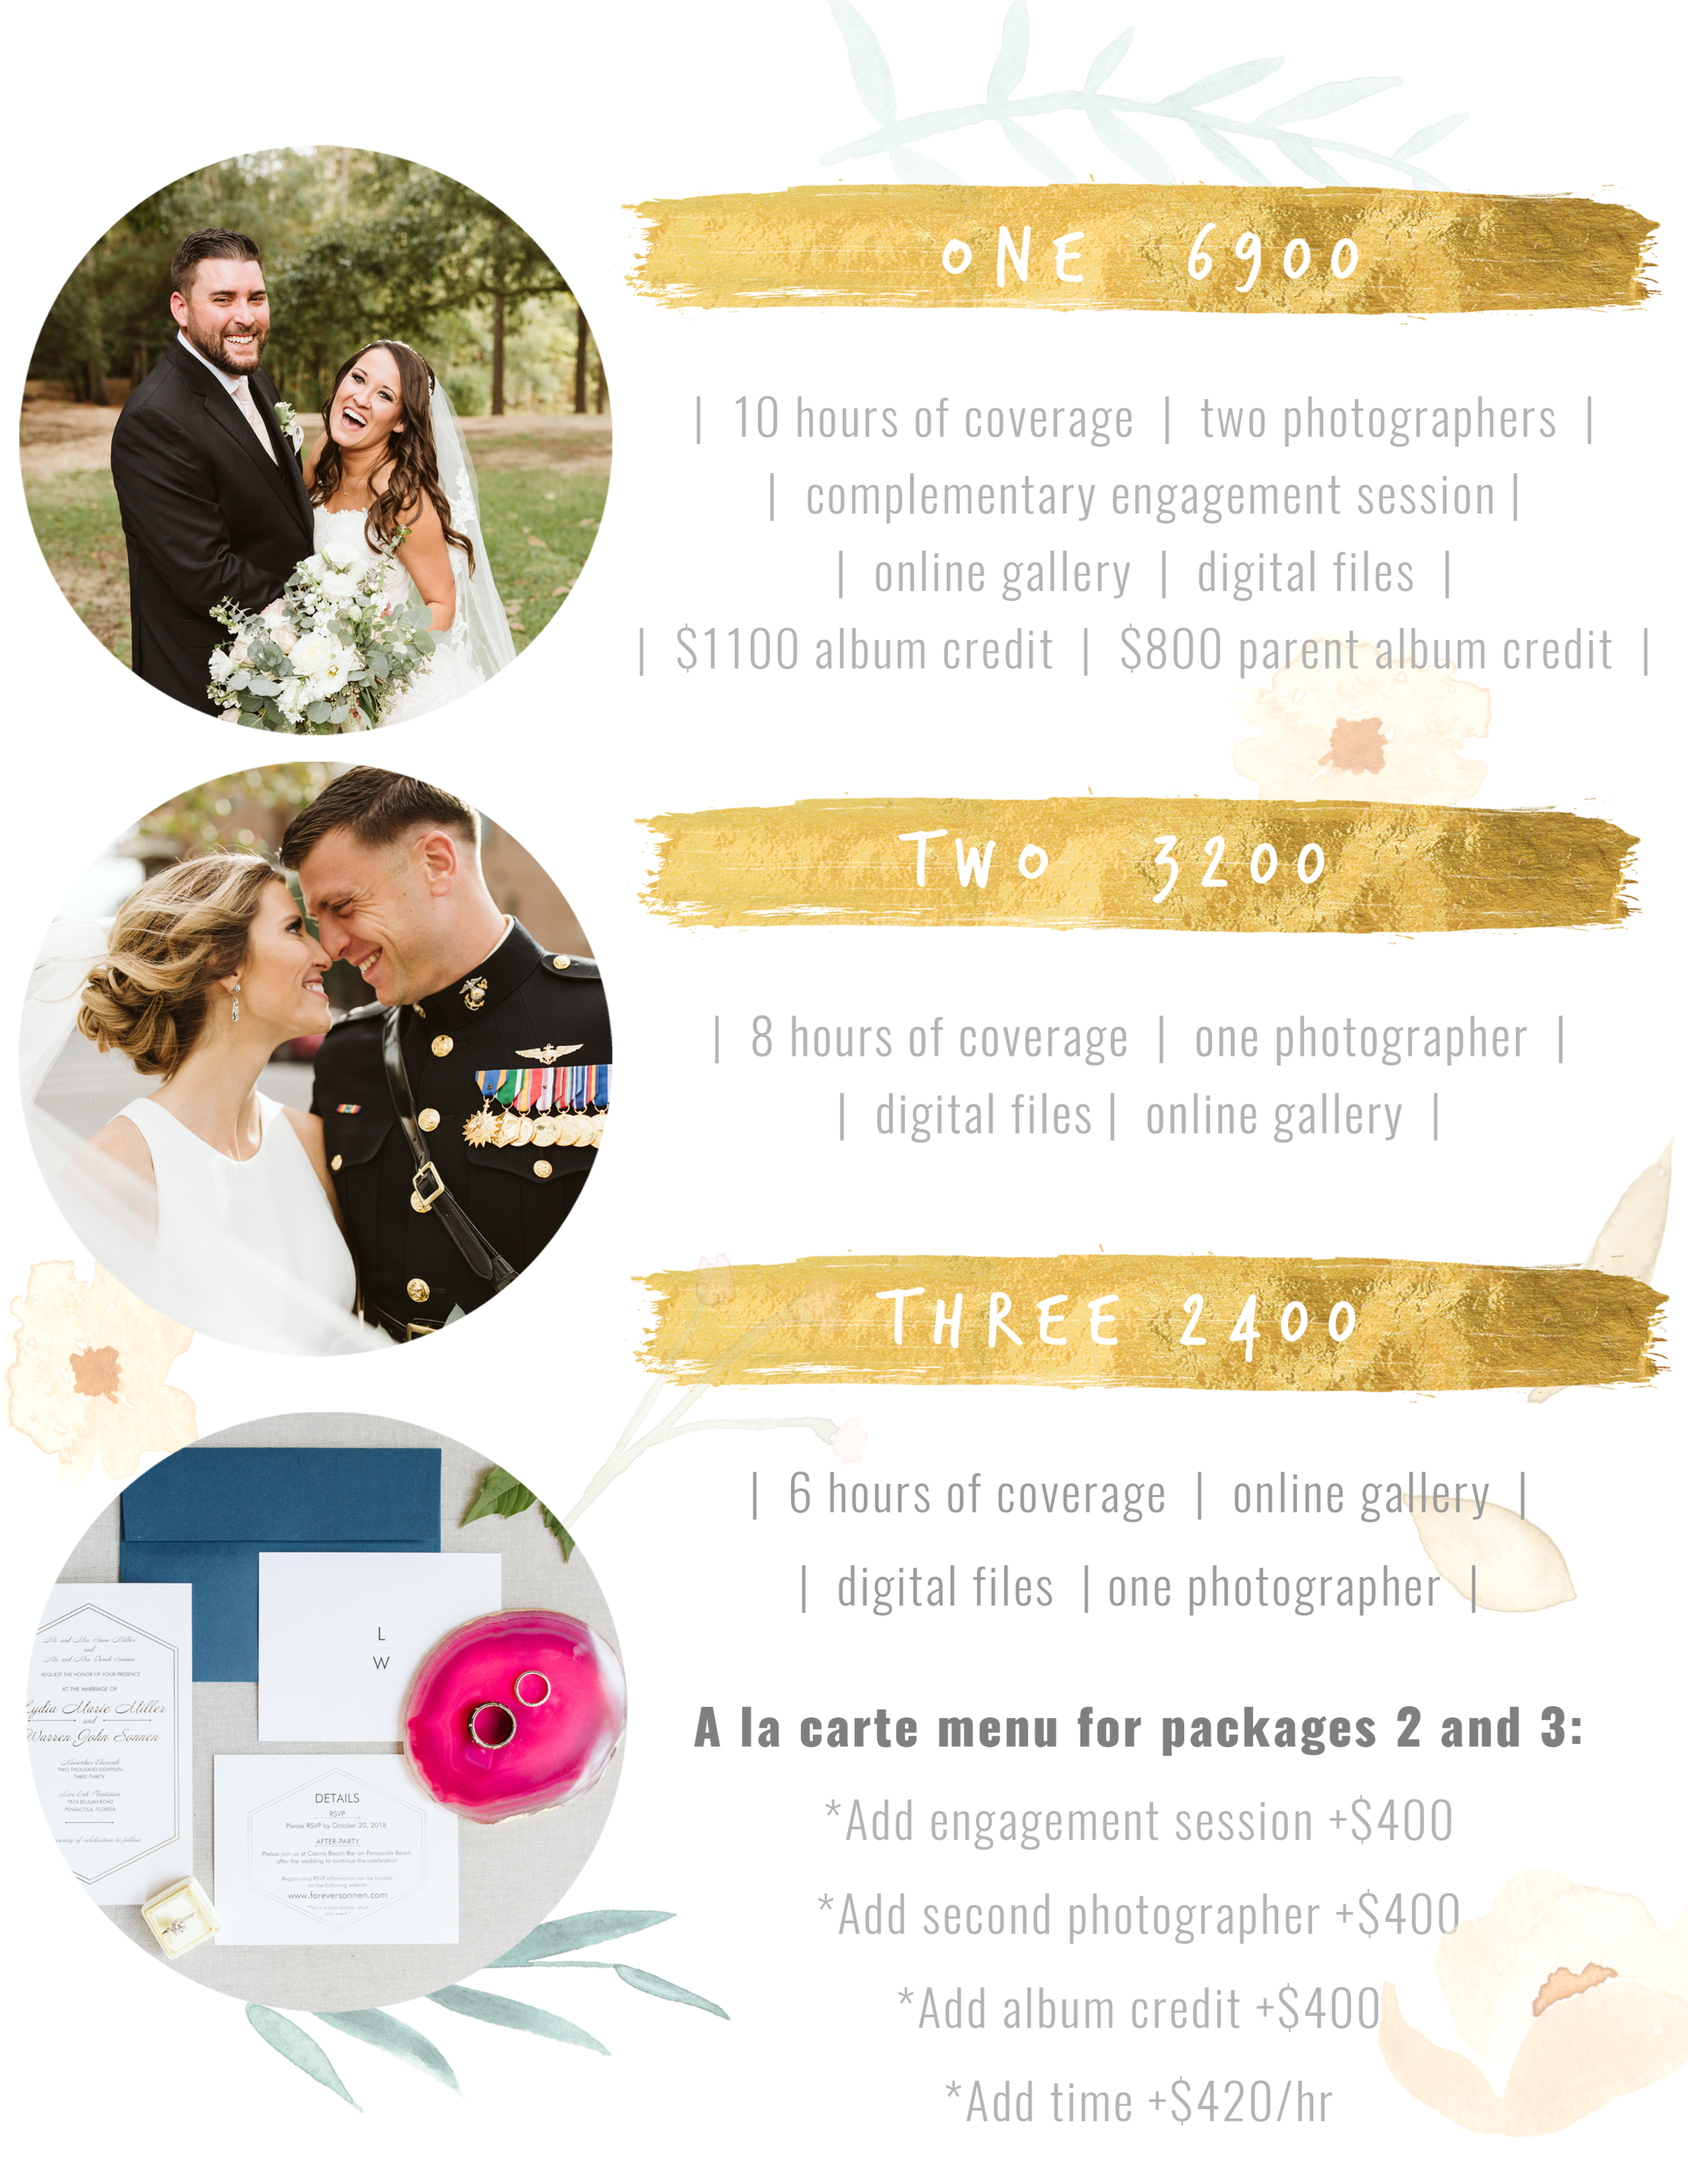 pensacola wedding photography prices